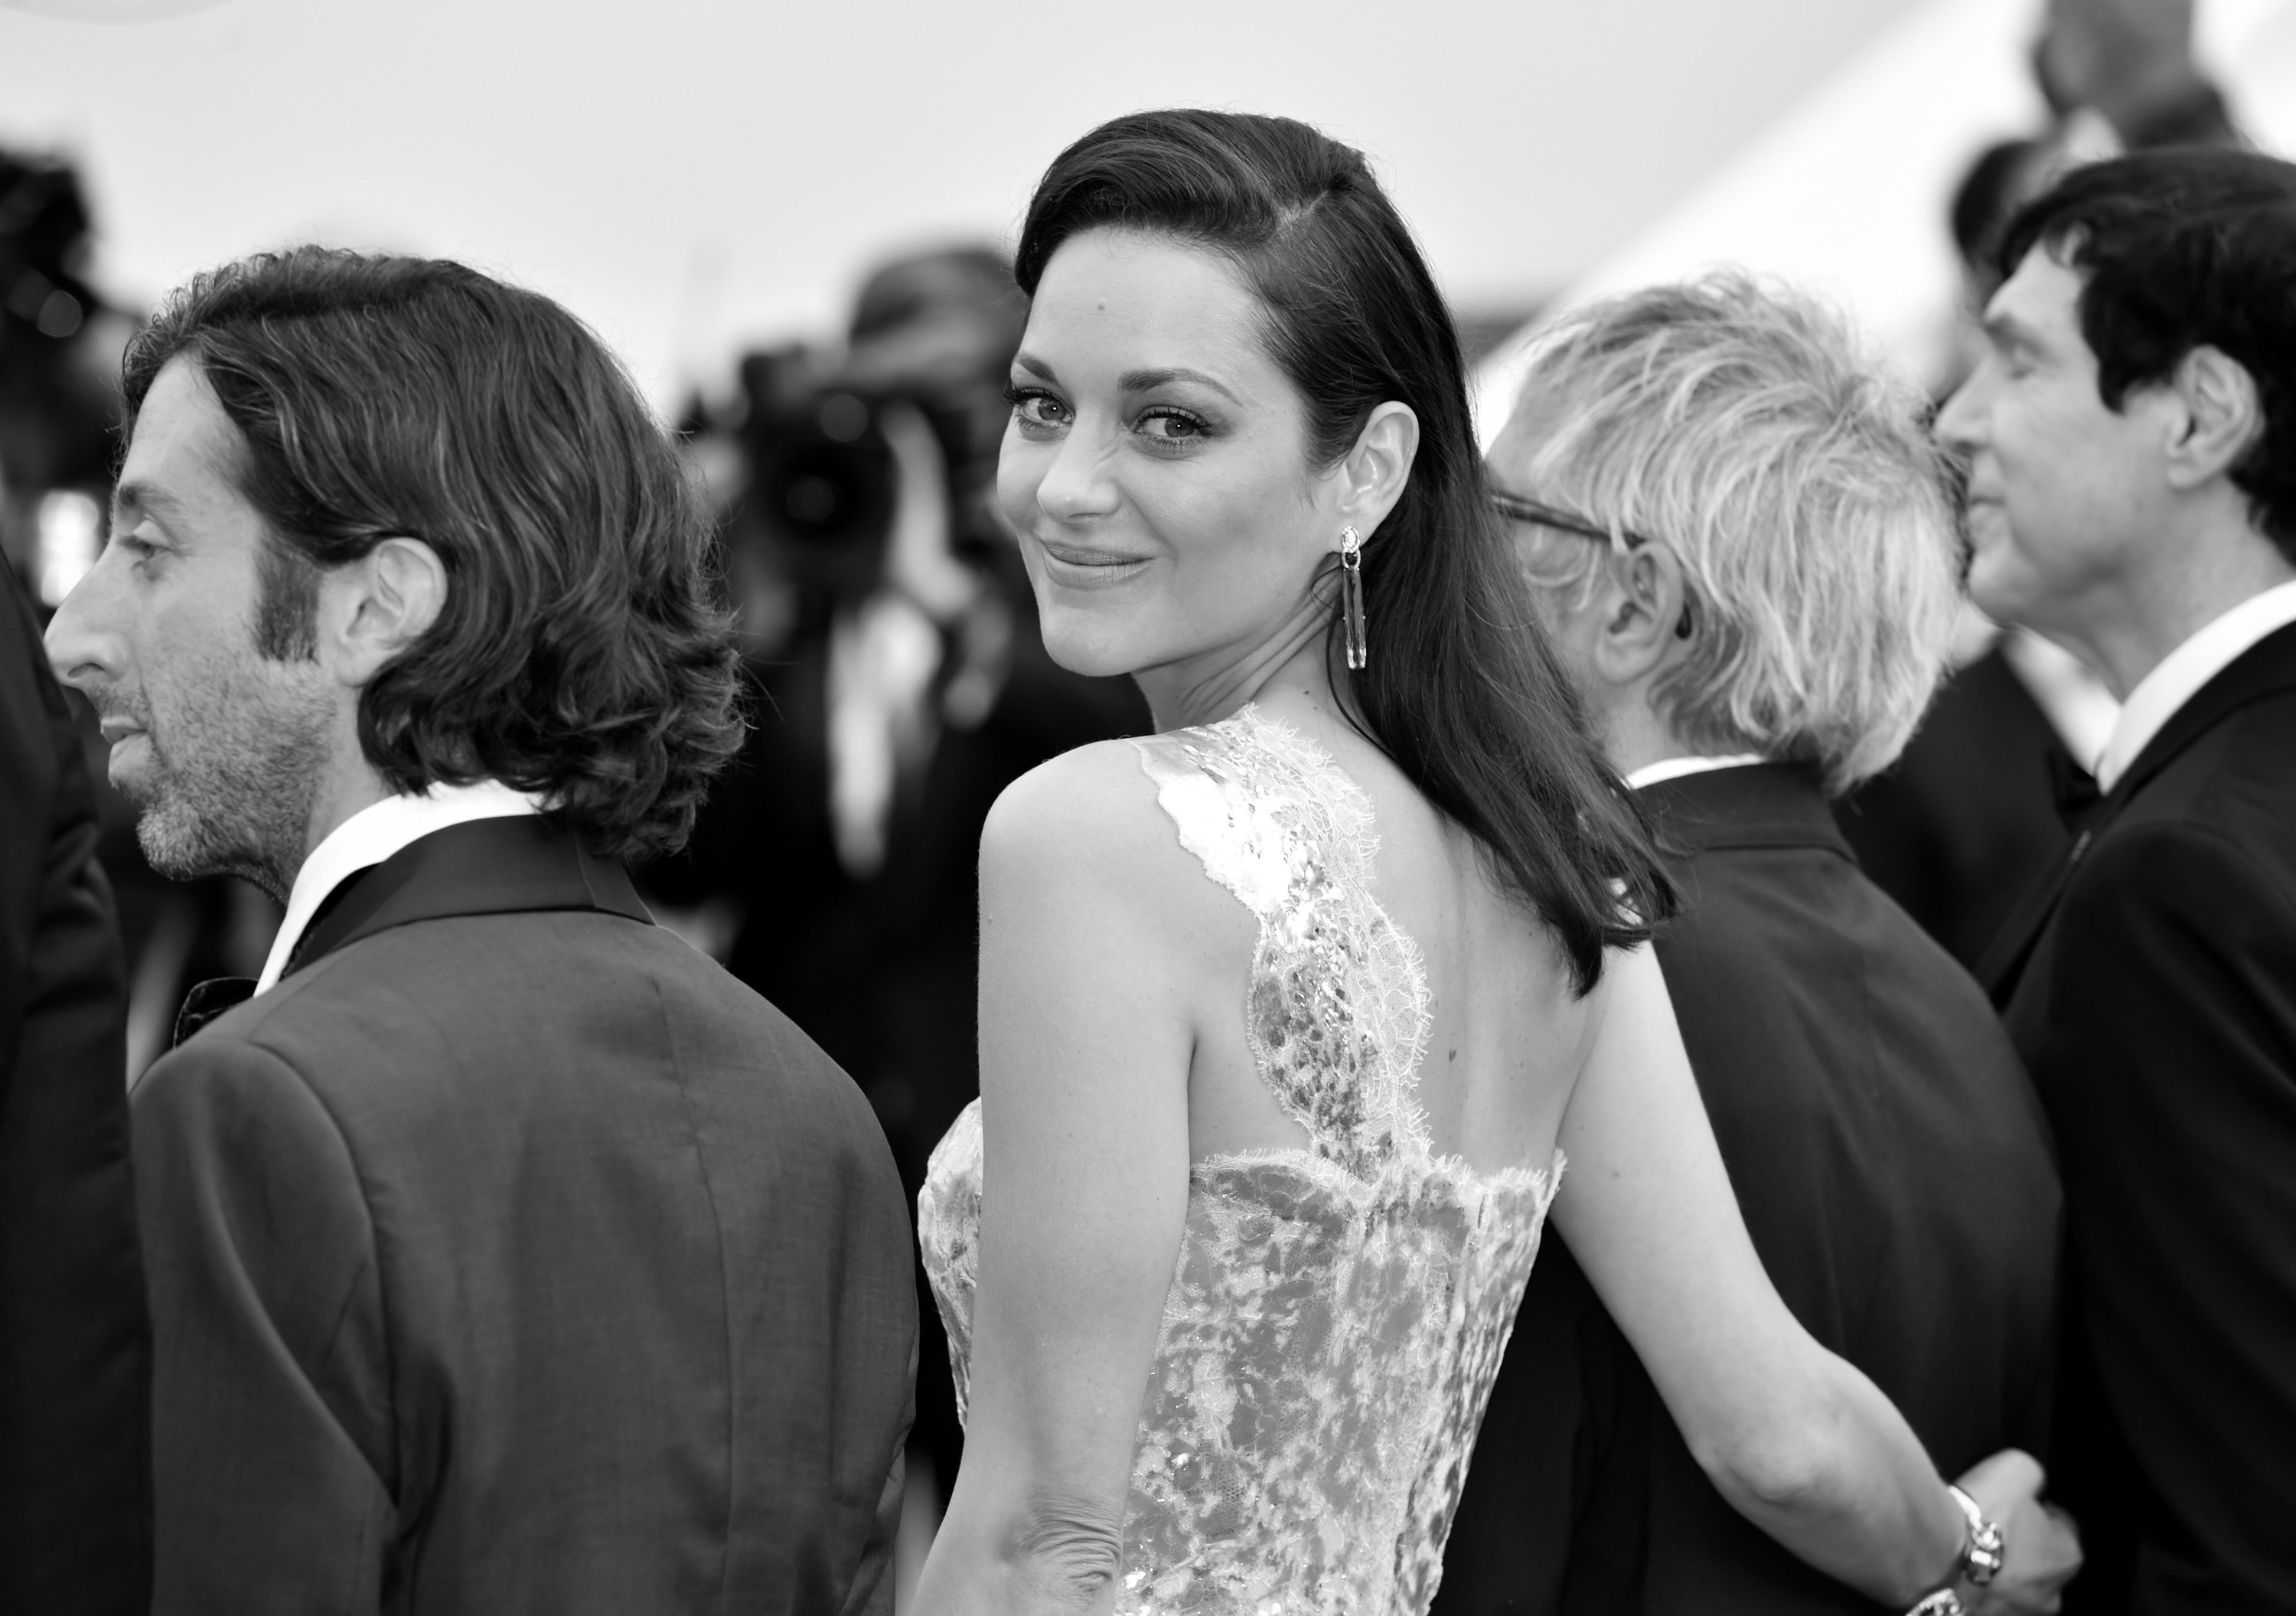 Marion Cotillard is pictured on the red carpet at the Cannes Film Festival